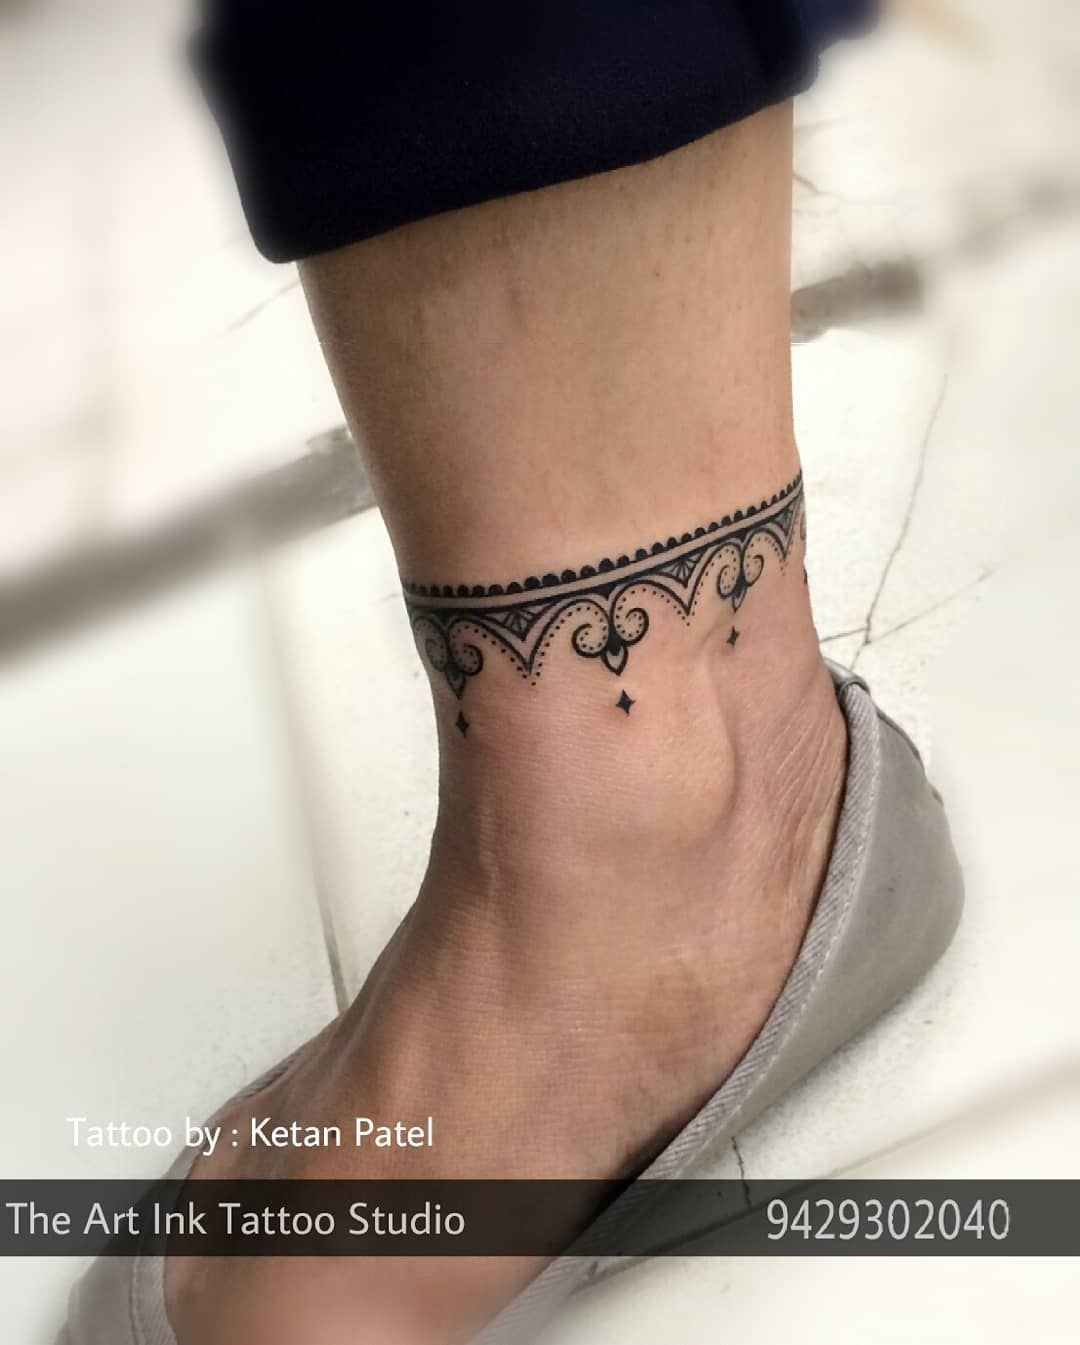 Pin By The Art Ink Tattoo Studio On Tattoo Girls Ankle Tattoo Designs Ankle Tattoo Tattoo Designs For Girls